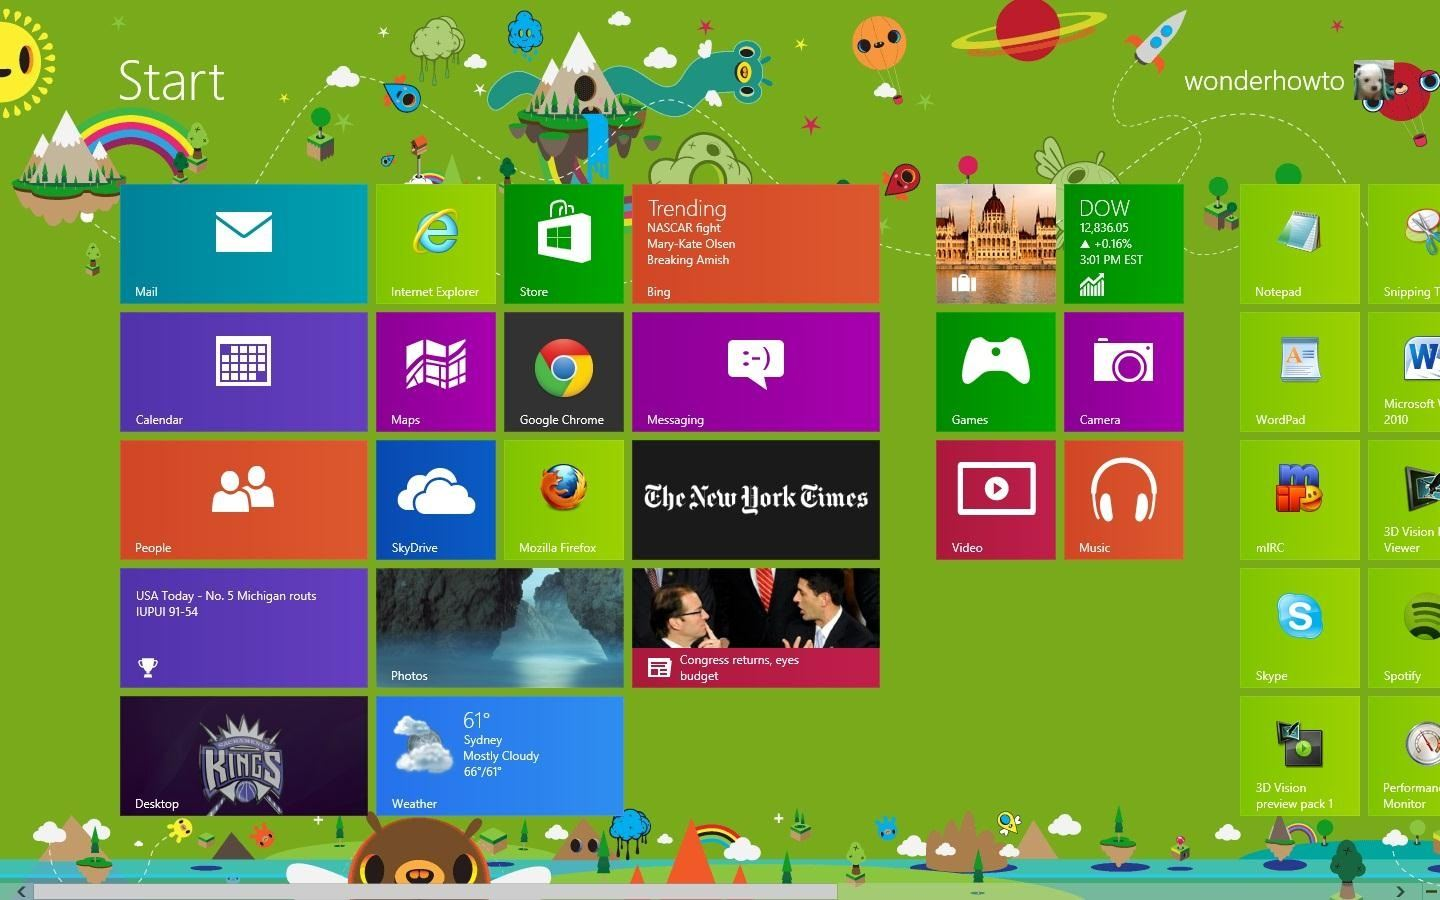 How to Add a Custom Background Image to Your Windows 8 Start Screen